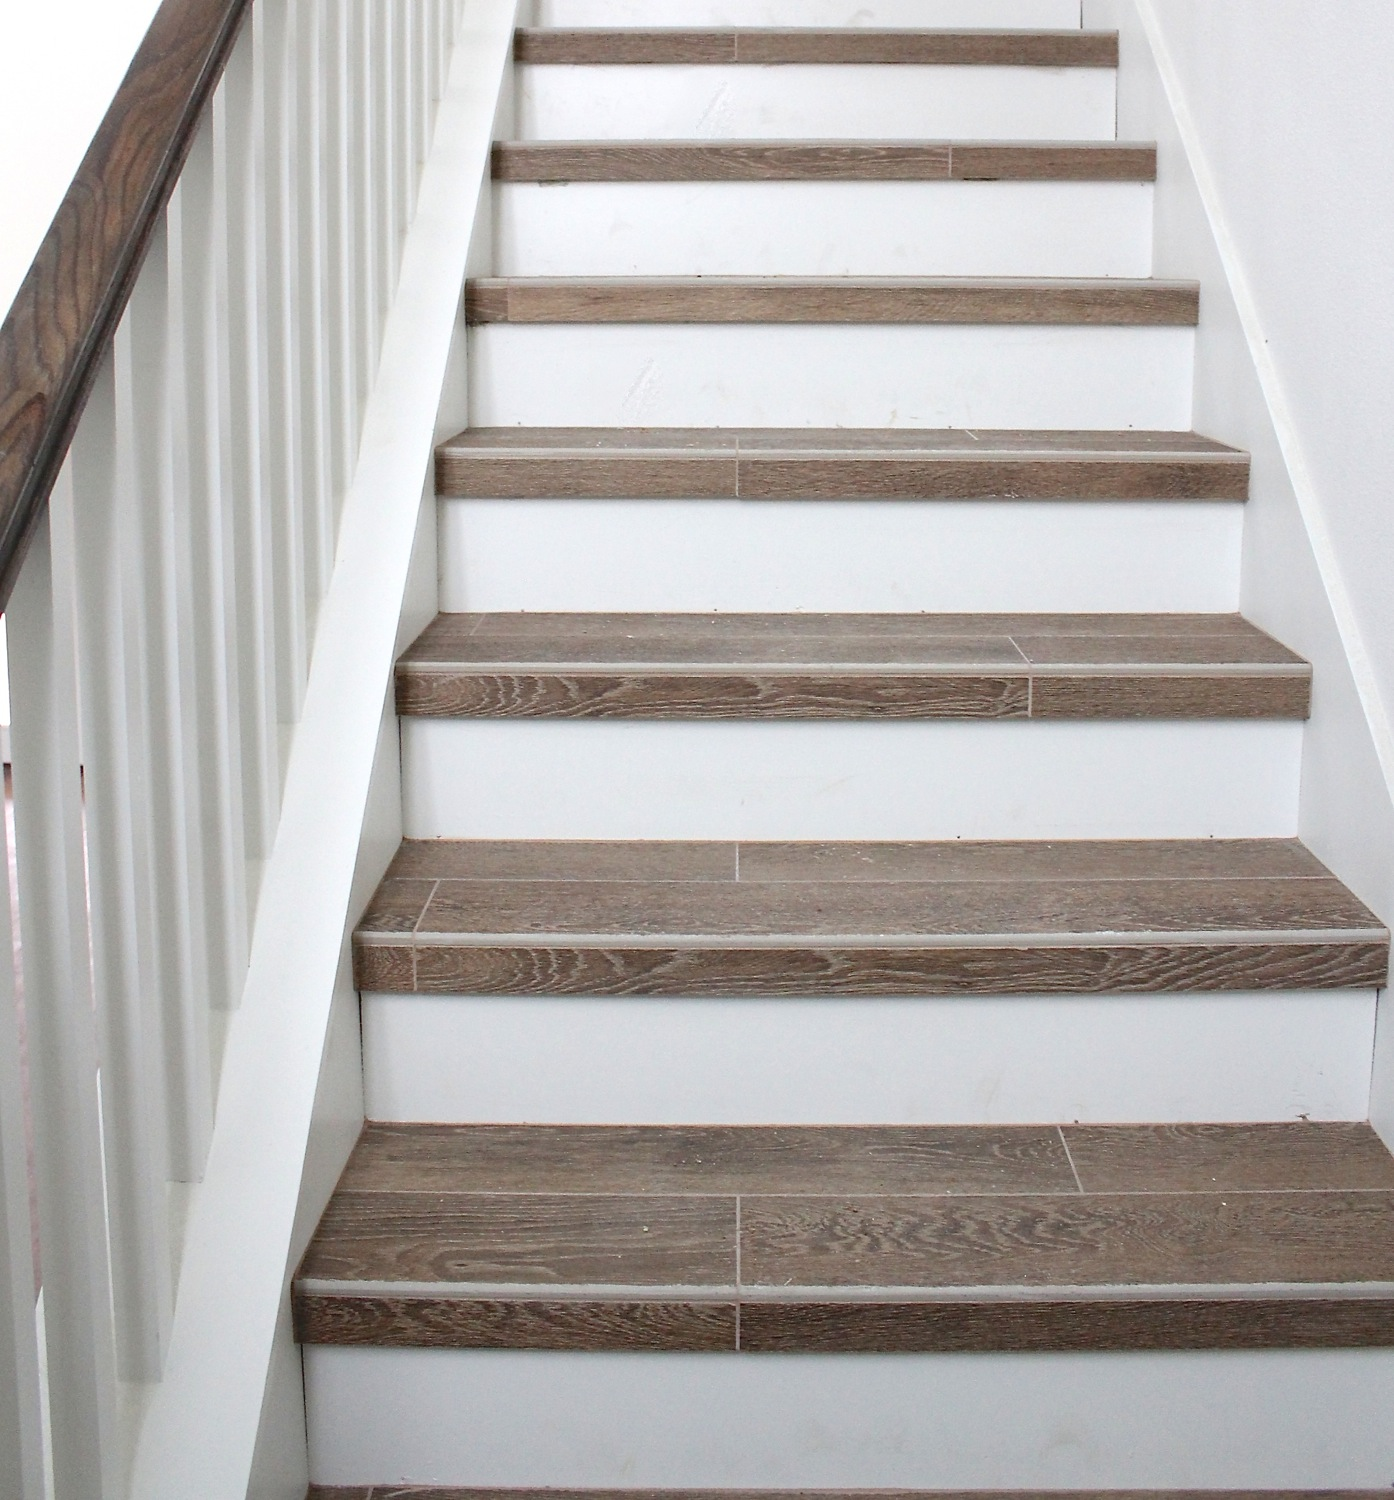 Flooring Ideas For Stairs Building A New Home Tile Flooring Countertops And